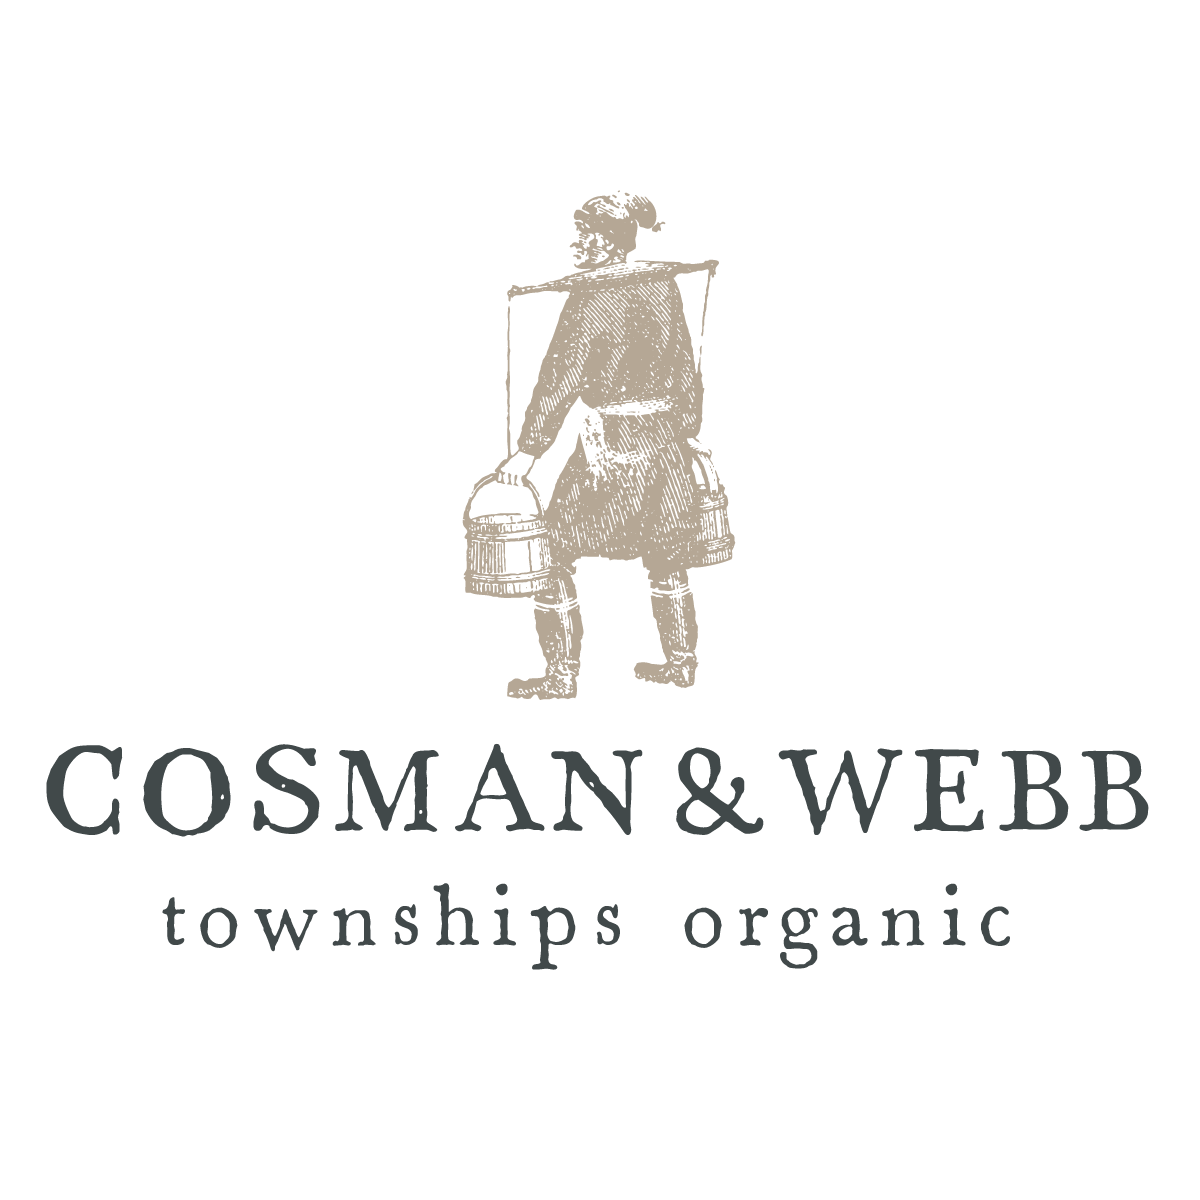 Cosman & Webb Townships Organic | Pure Organic Maple Syrup